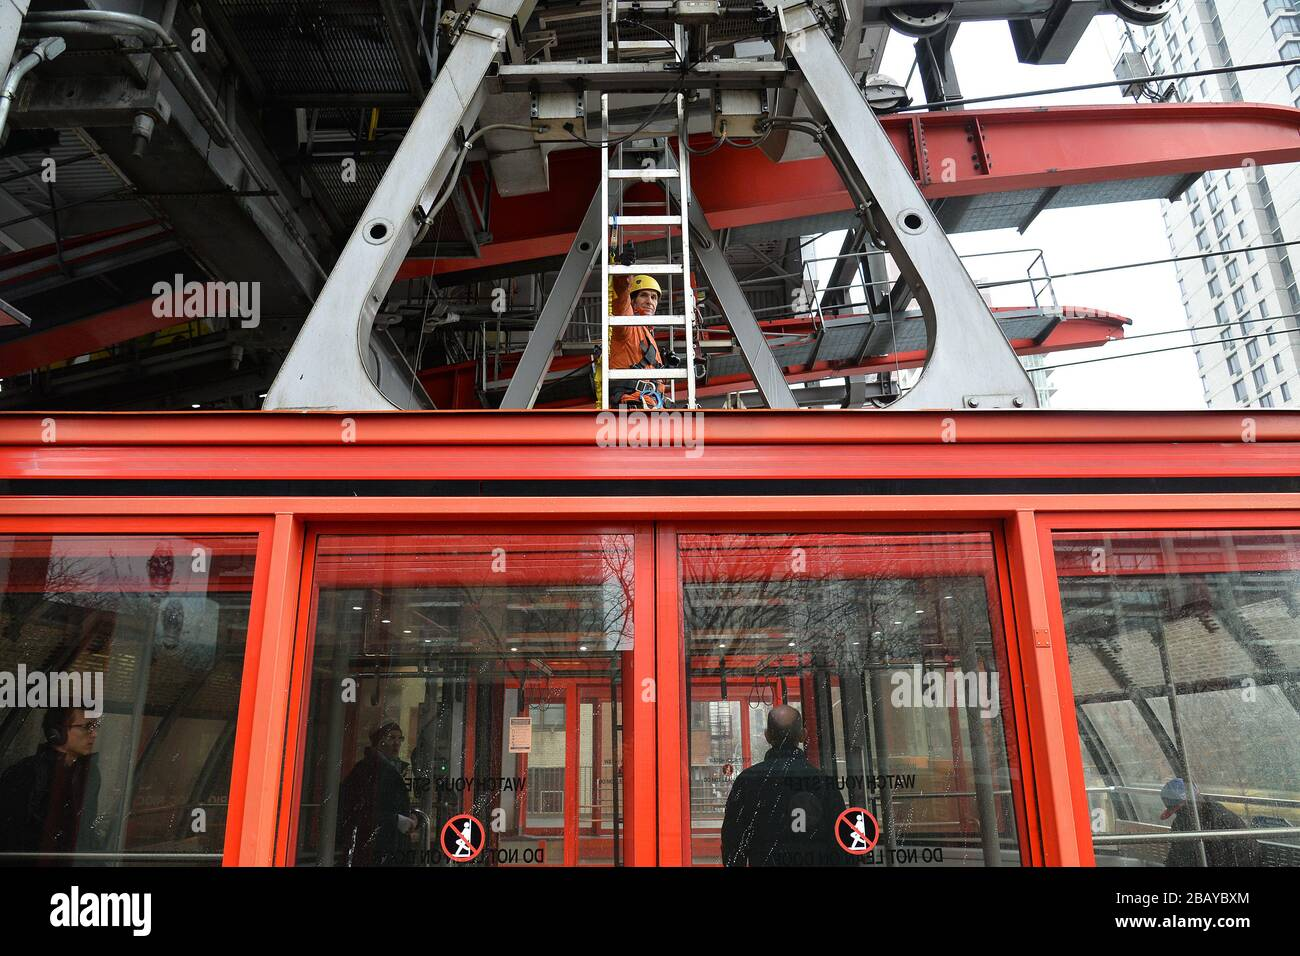 New York City, USA. 29th Mar, 2020. Attached by a safety harness, a maintenance worker rides atop the Roosevelt Island Tram, making several trips between Manhattan and Roosevelt Island during his inspection, New York, NY, March 29, 2020. (Anthony Behar/Sipa USA) Credit: Sipa USA/Alamy Live News Stock Photo